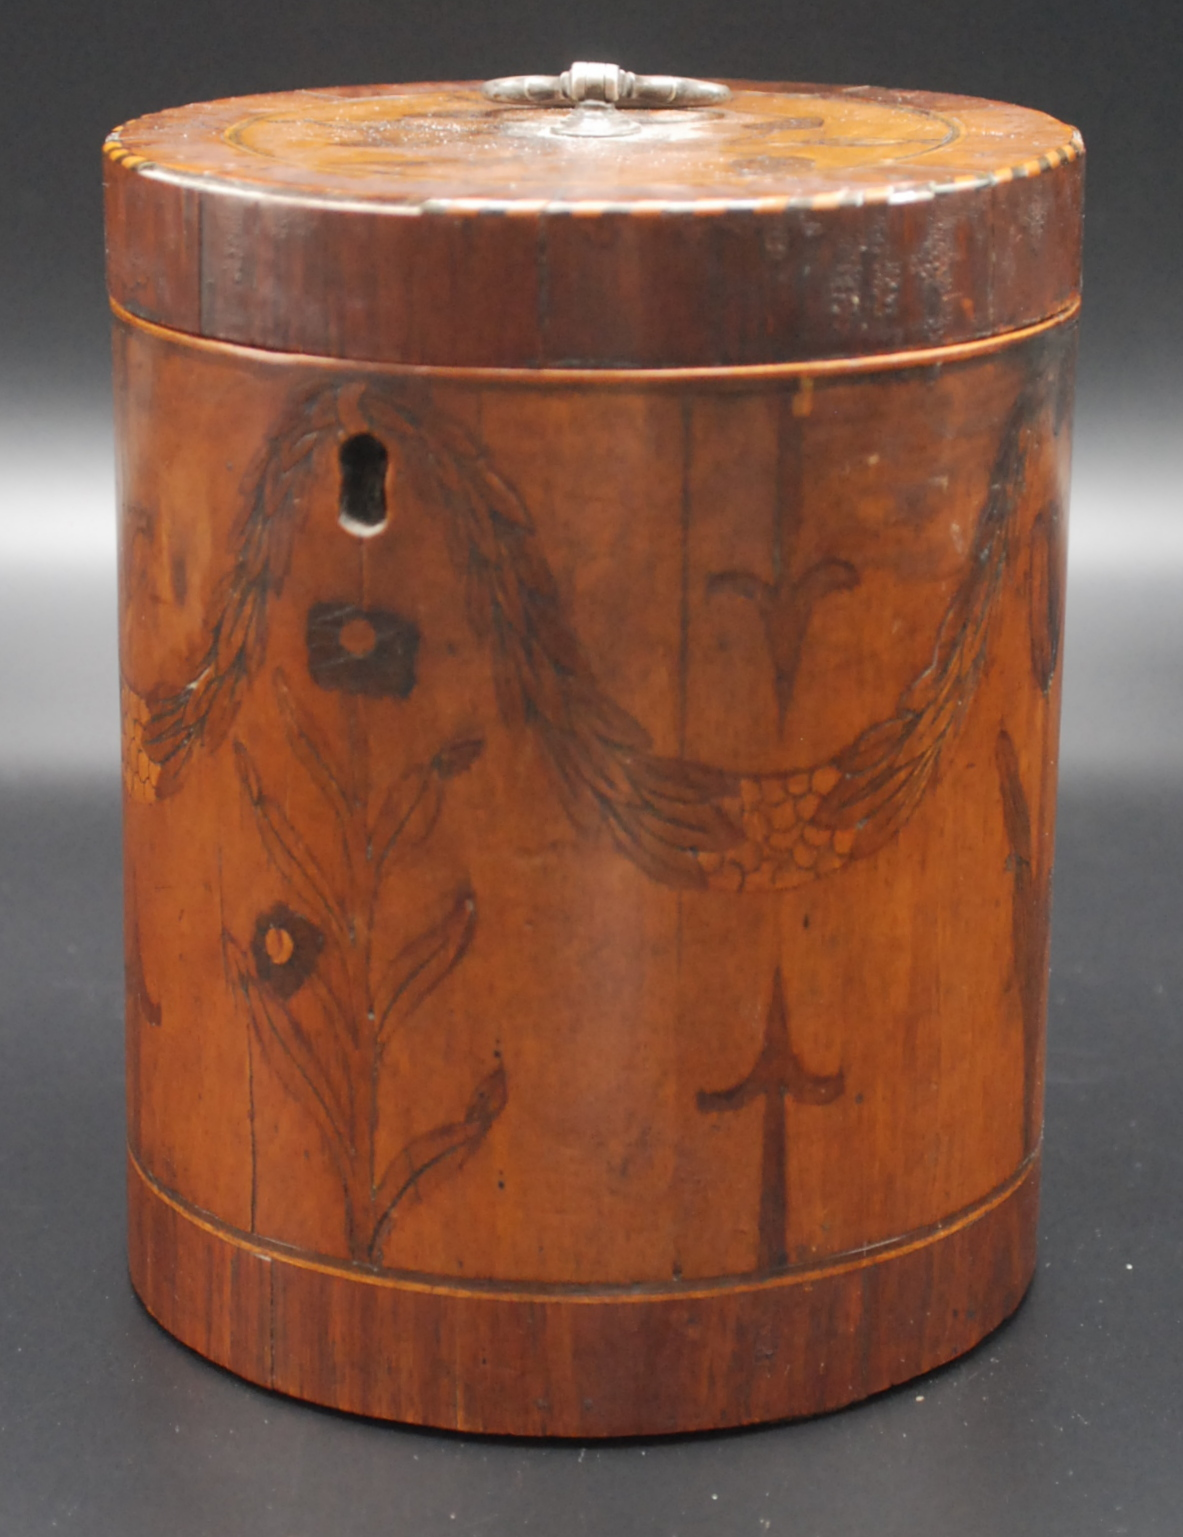 Lot 40 - An extremely rare George III cylindrical tea caddy, the hinged lid with silver (unmarked) handle,